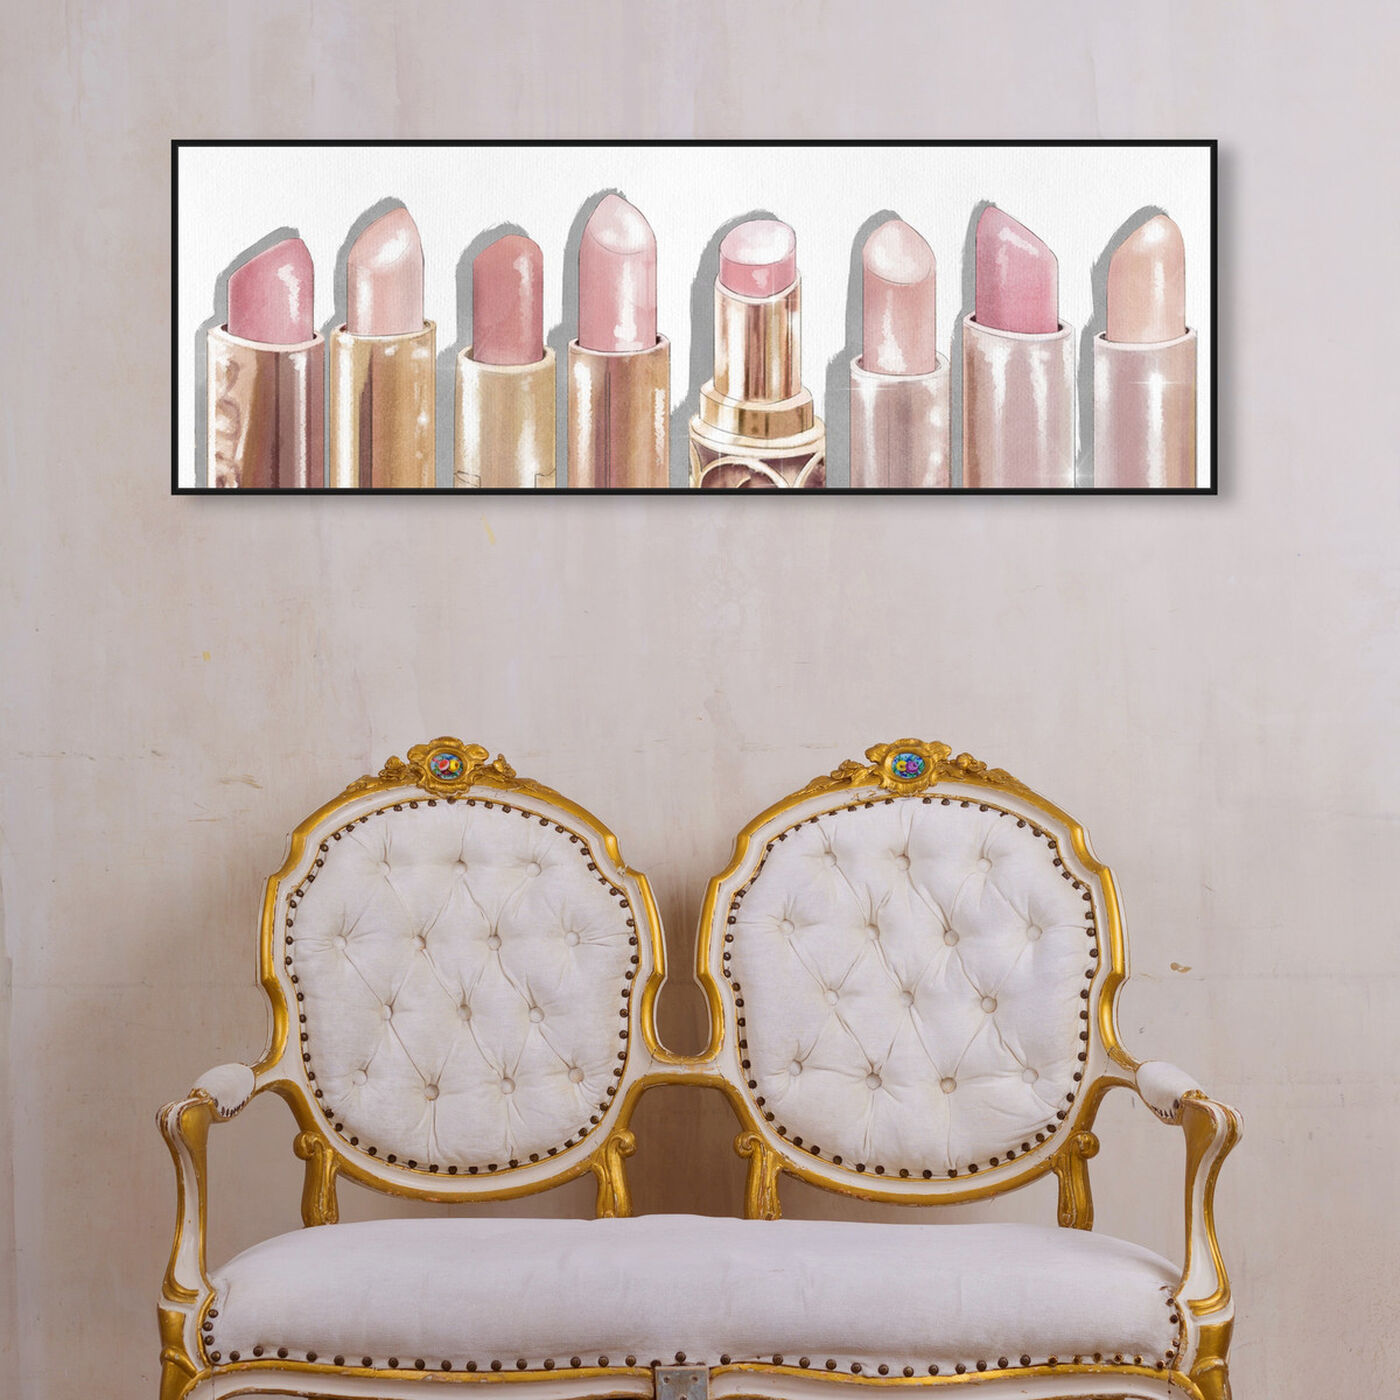 Hanging view of Lipstick Shades featuring fashion and glam and makeup art.